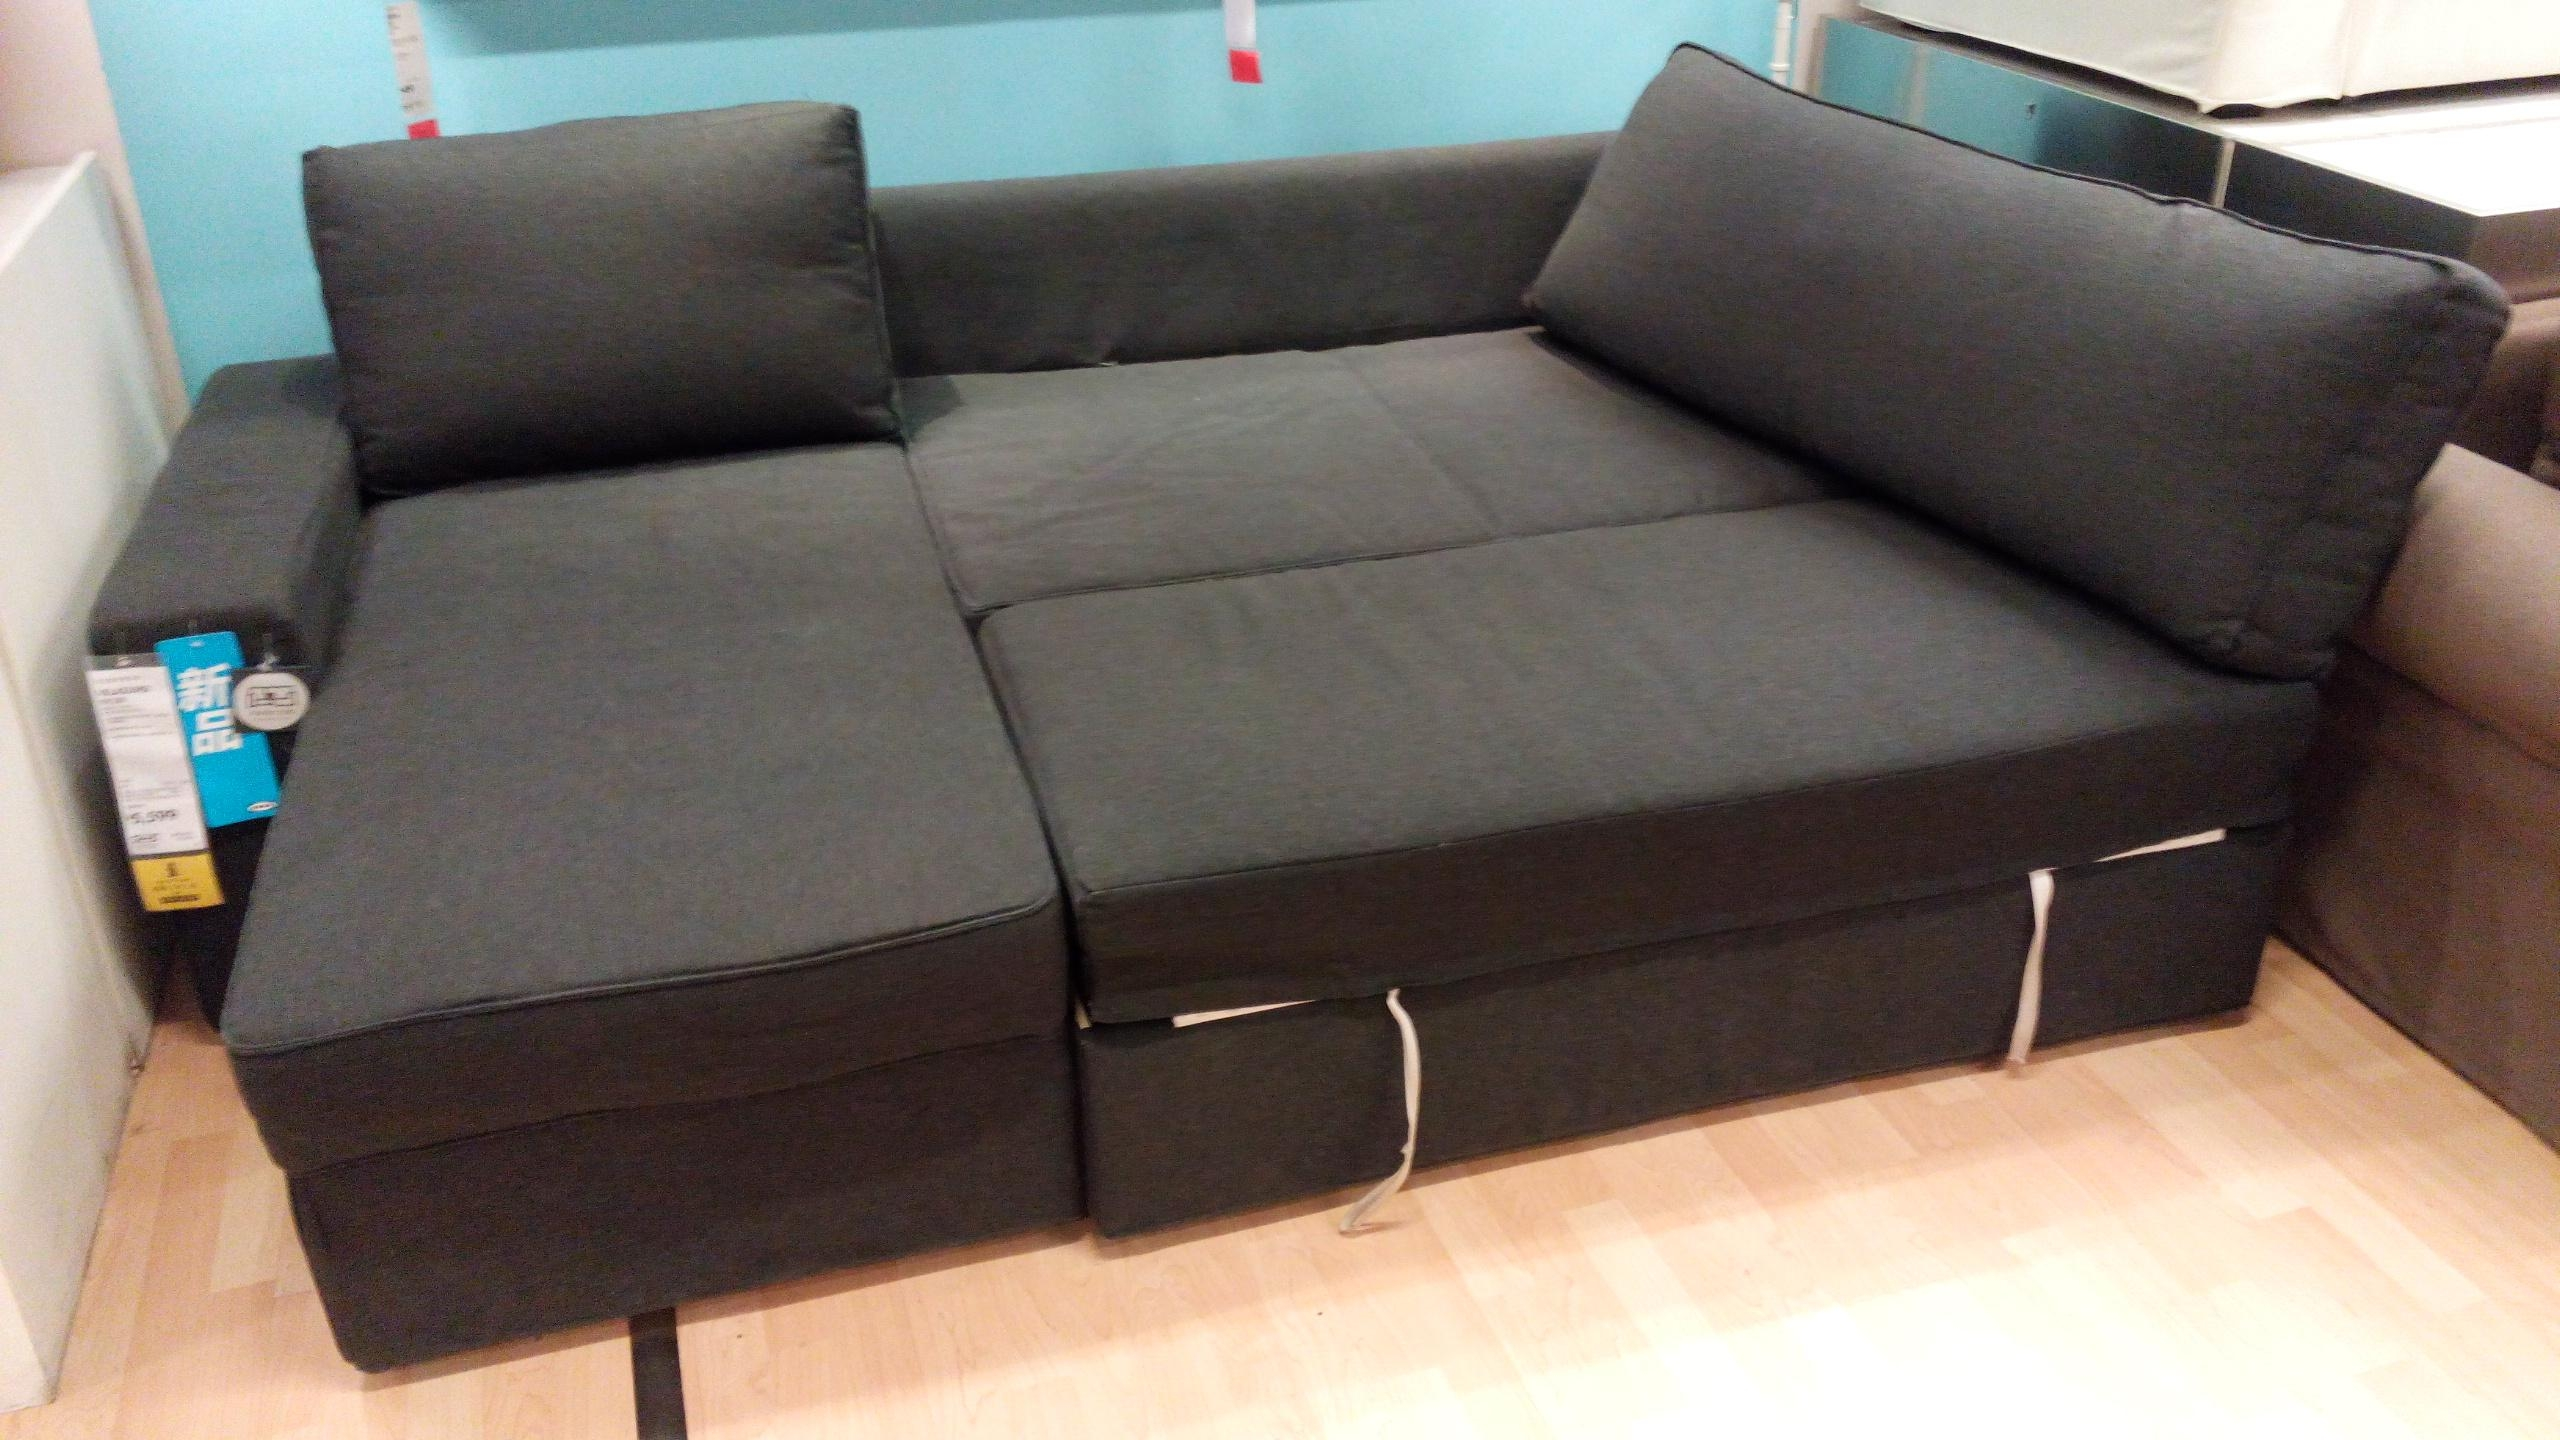 Ikea Vilasund And Backabro Review – Return Of The Sofa Bed Clones! Pertaining To Ikea Chaise Lounge Sofa (Image 10 of 20)